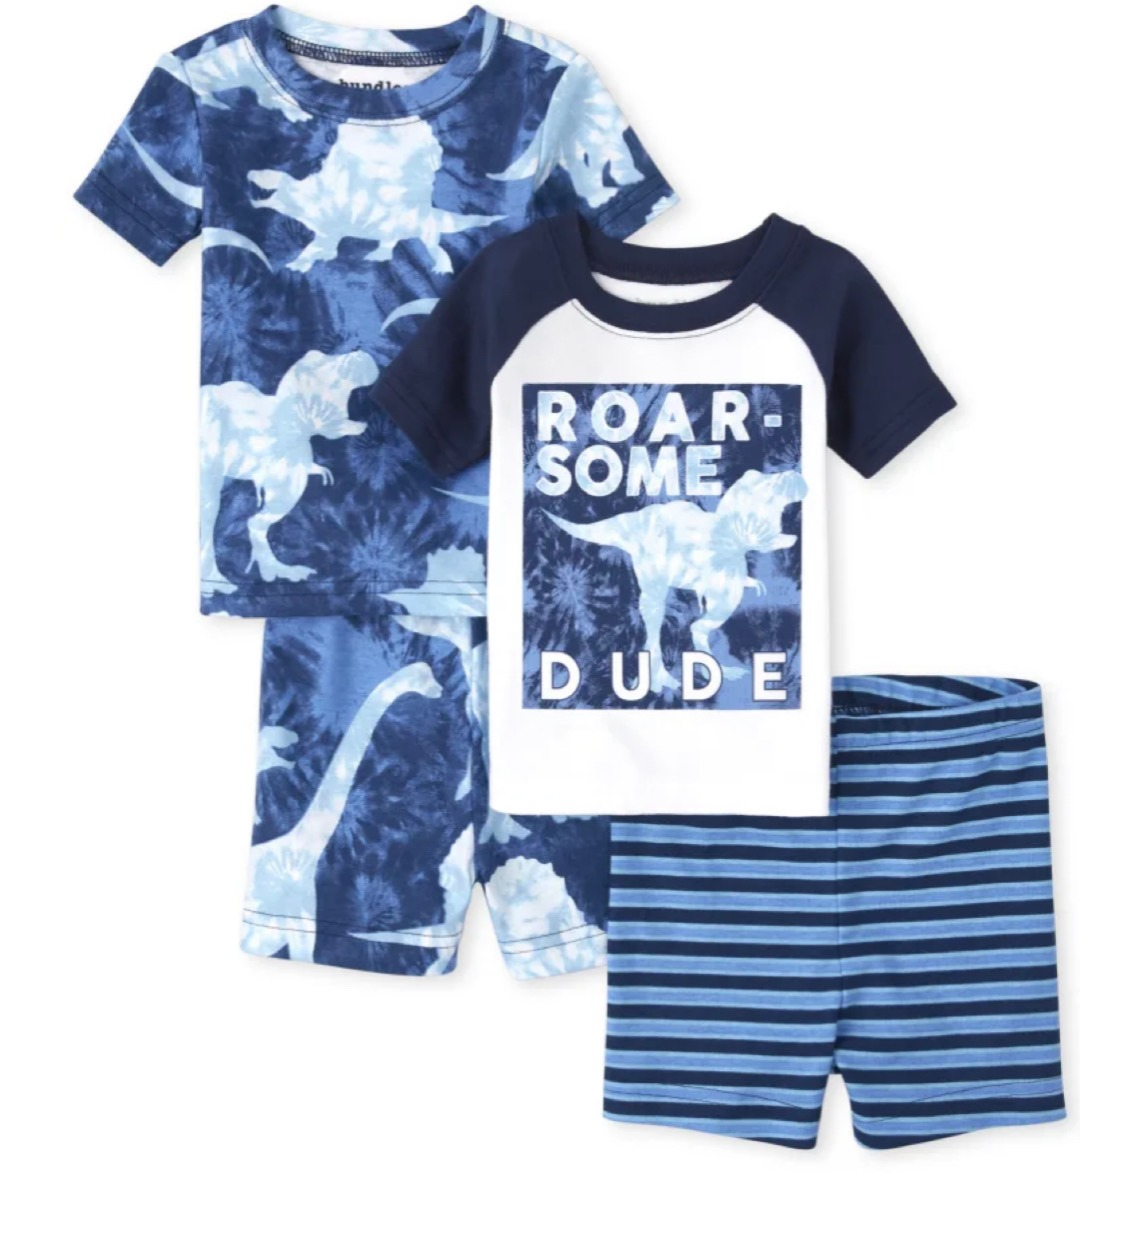 Which brand is the best for baby clothes?